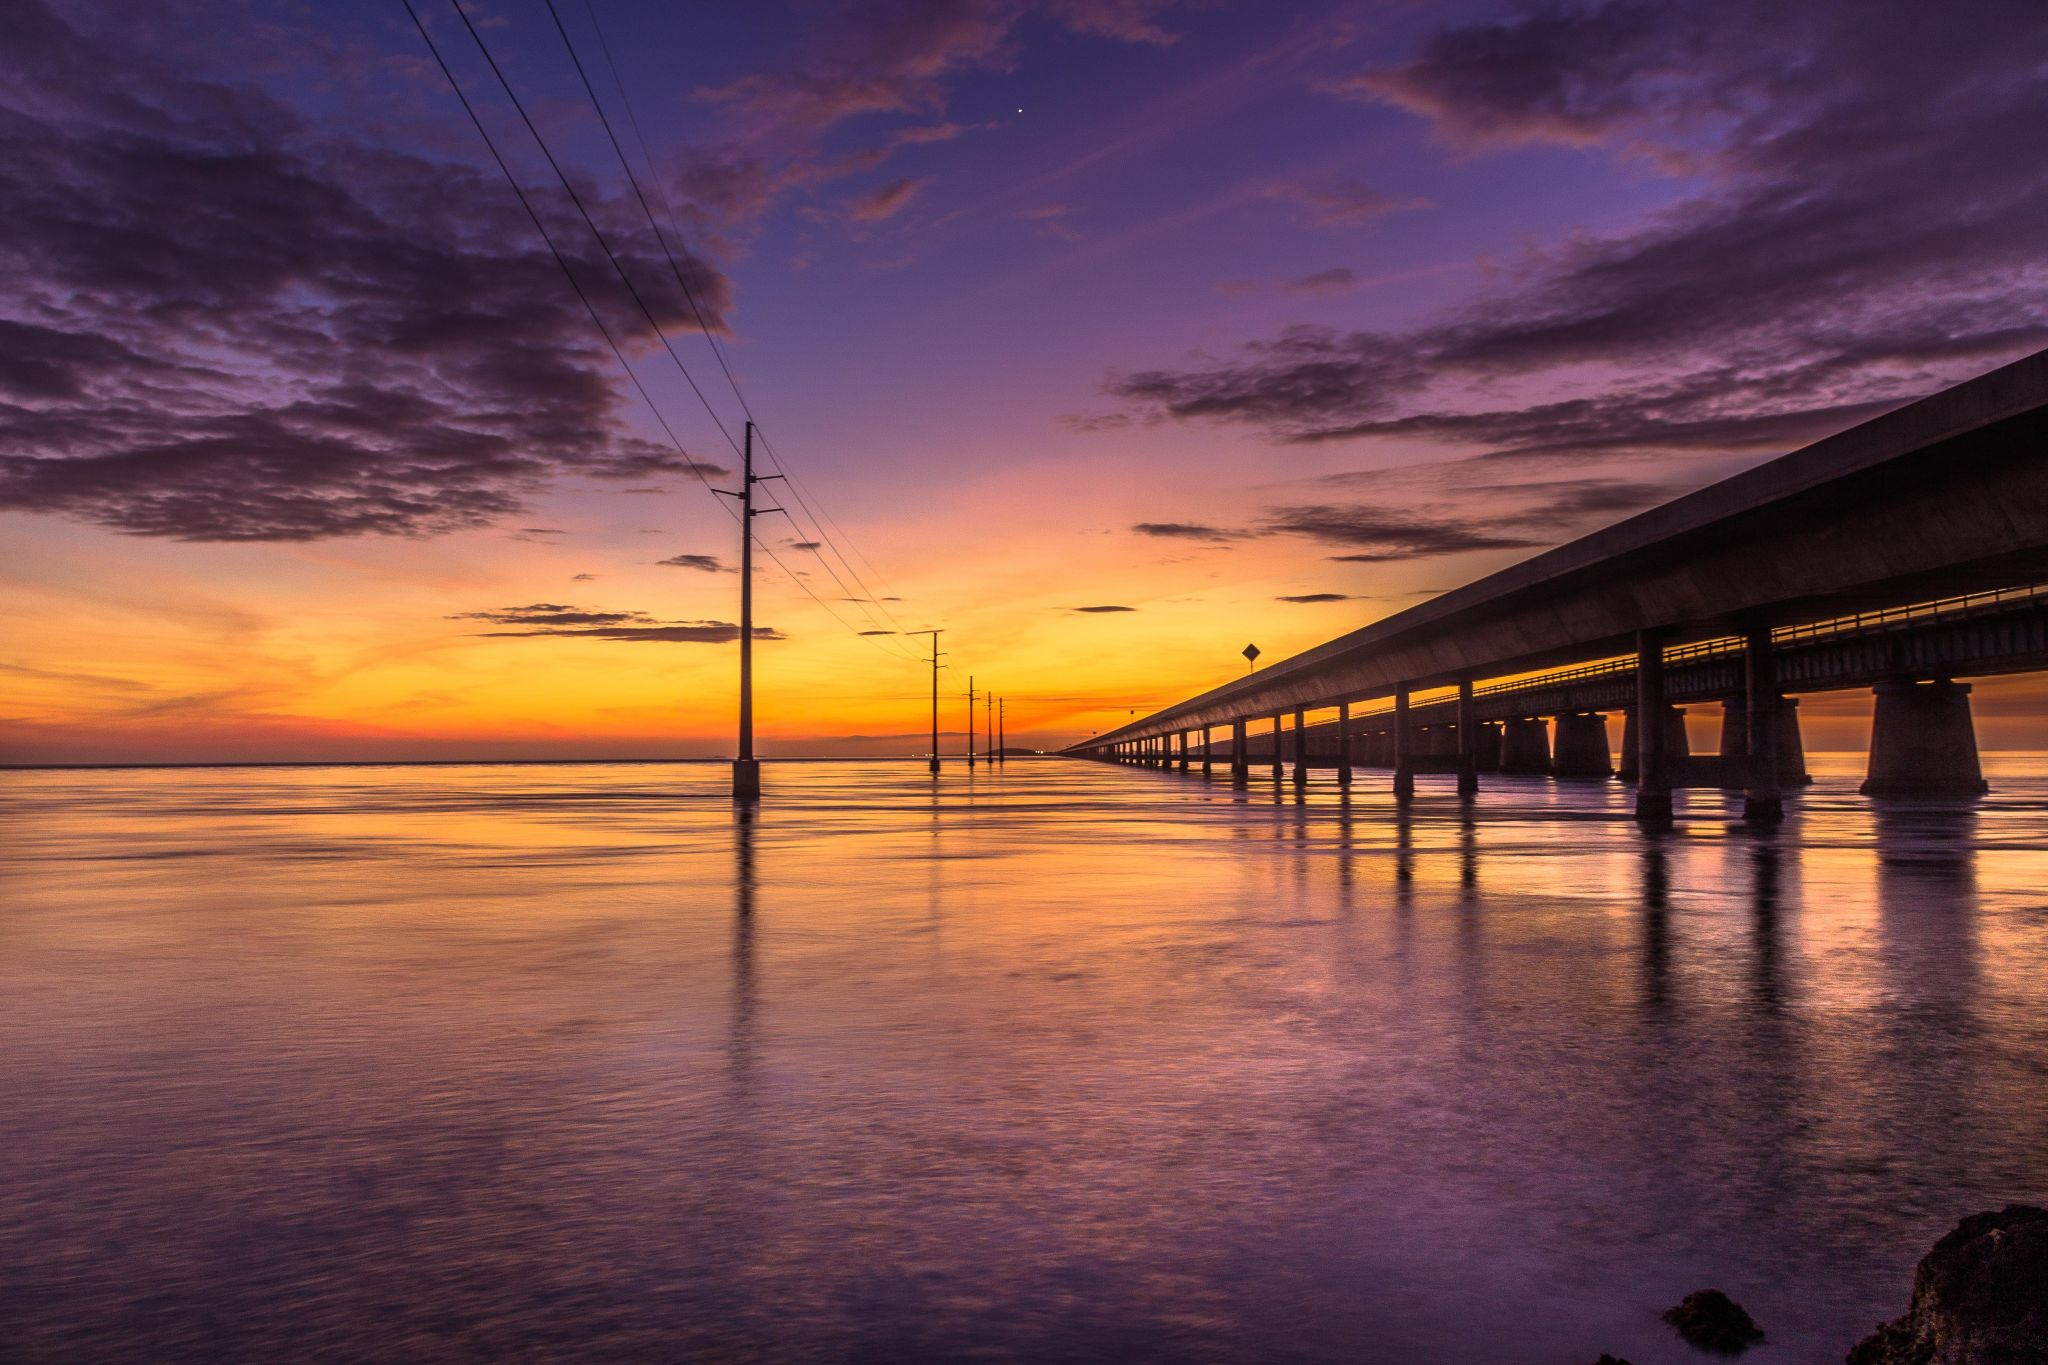 7 Mile Bridge Sunset, USA